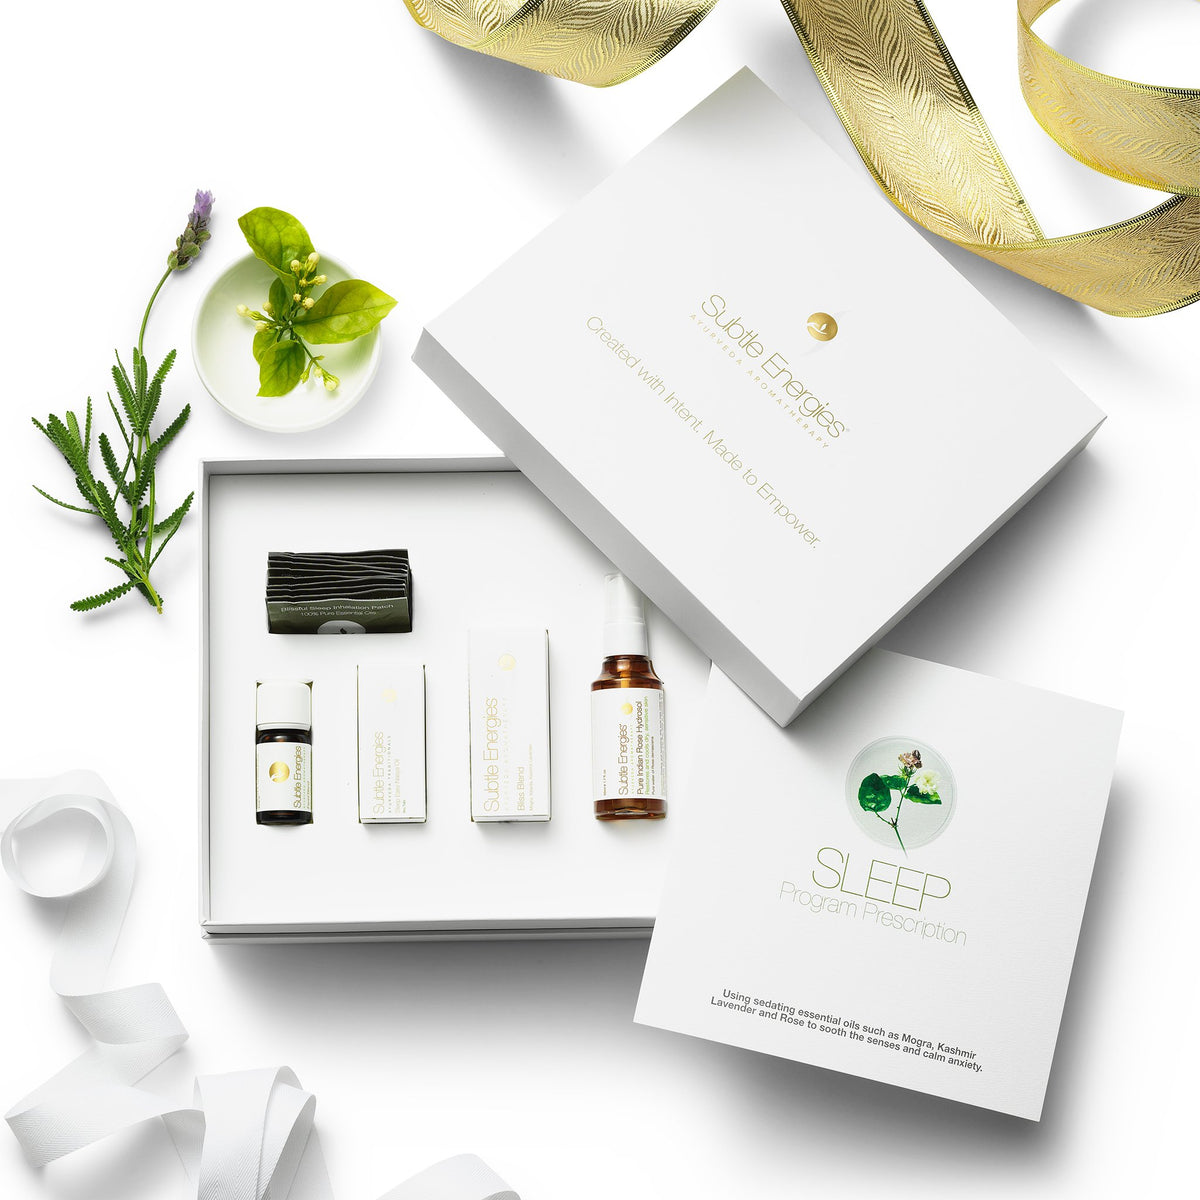 Sleep Support Program Prescription kit